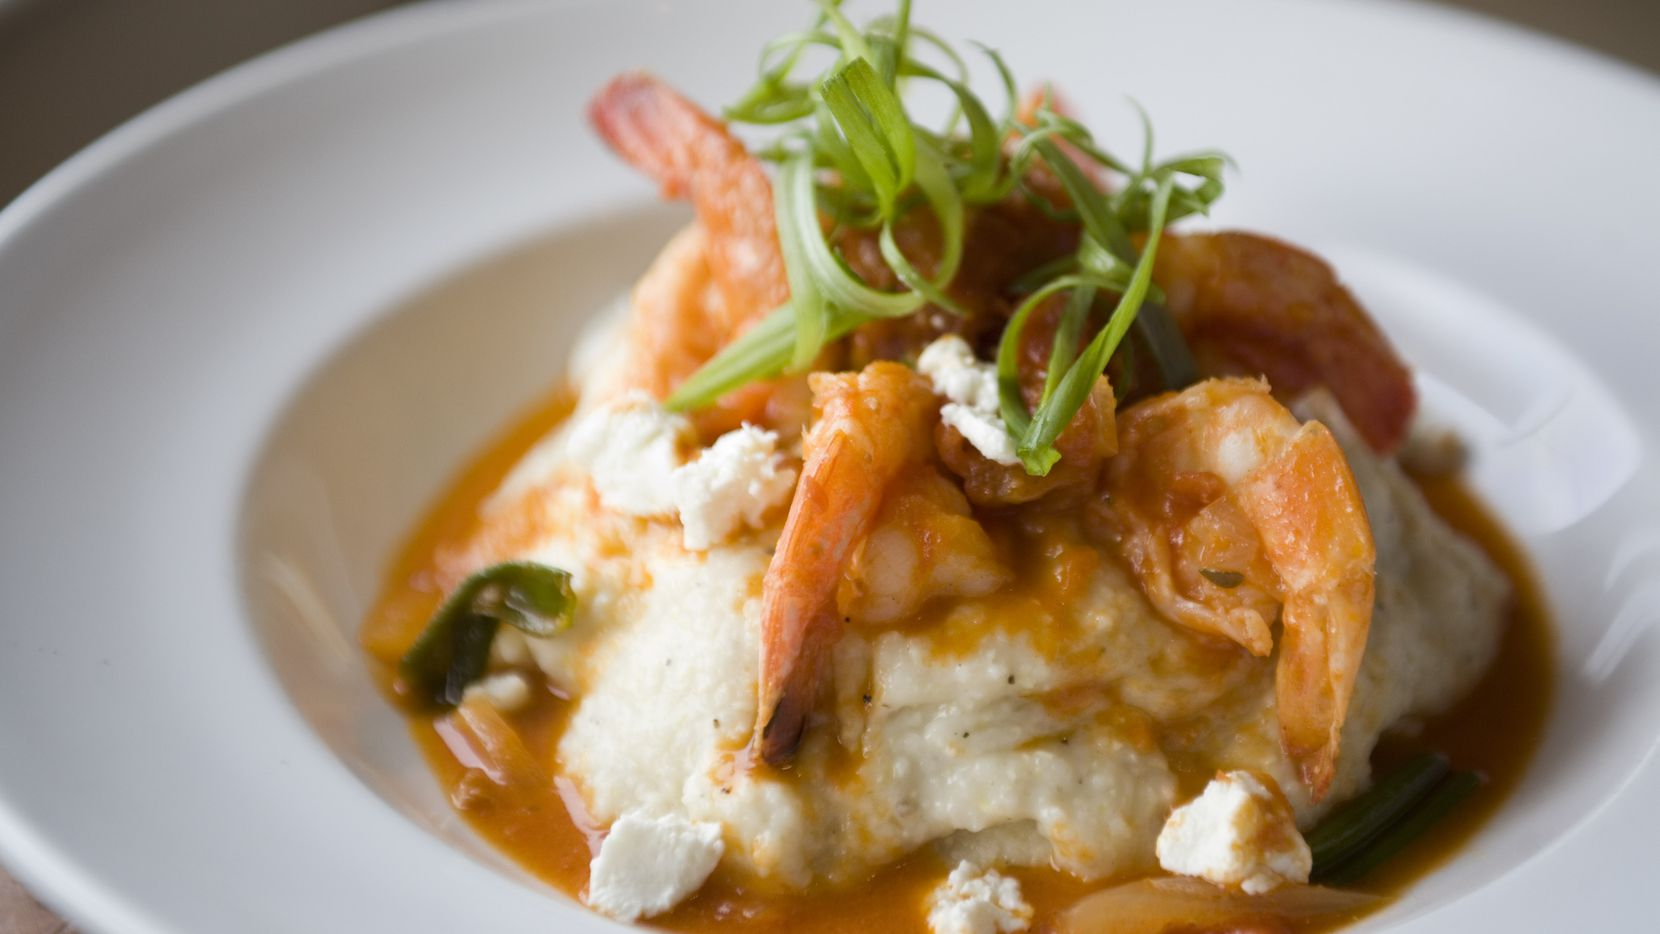 Shrimp and grits were a popular order at Hattie's in the Bishop Arts District, a part of the North Oak Cliff neighborhood in Dallas.